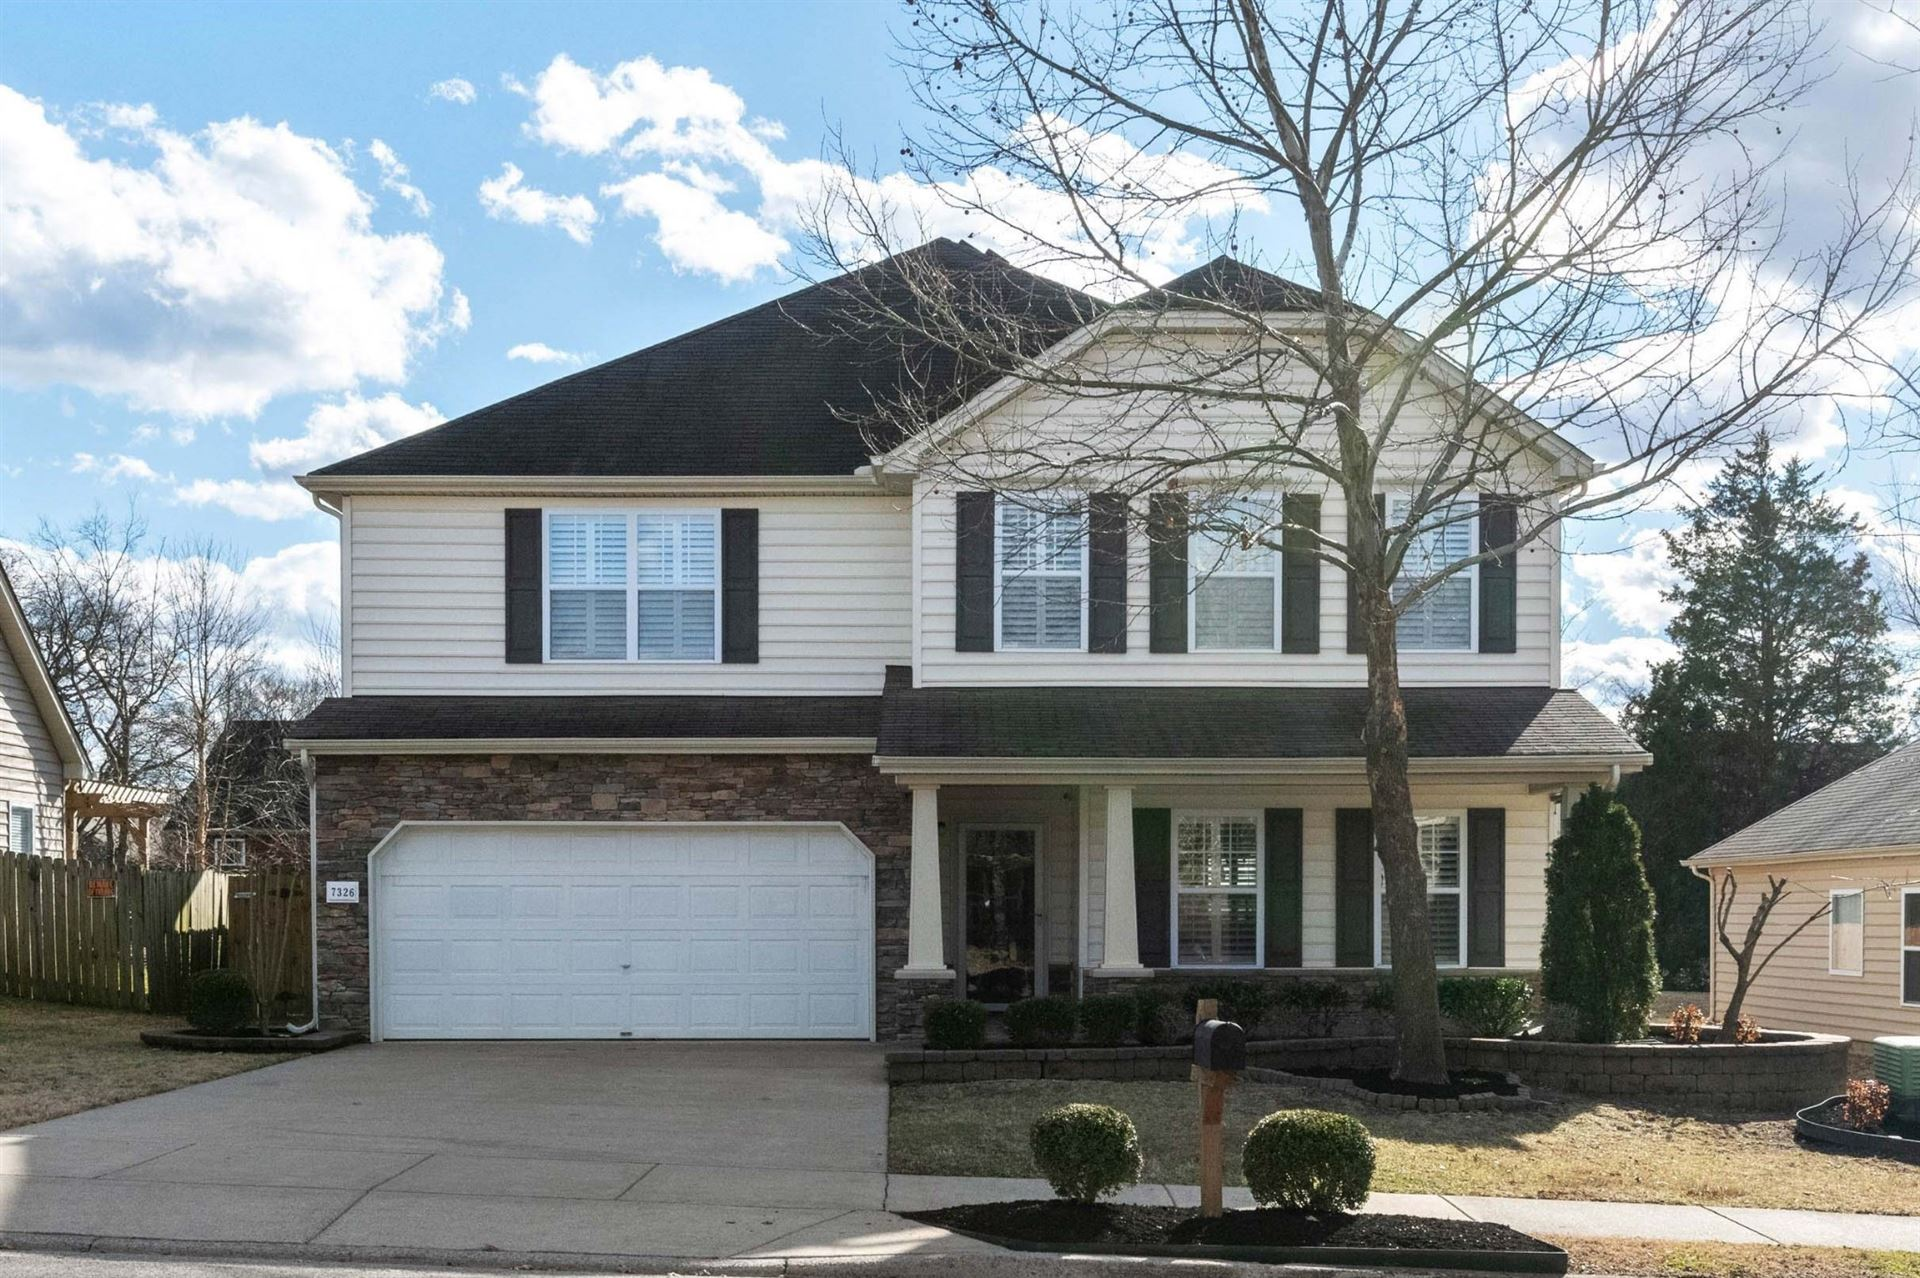 Photo of 7326 Autumn Crossing Way, Brentwood, TN 37027 (MLS # 2221508)